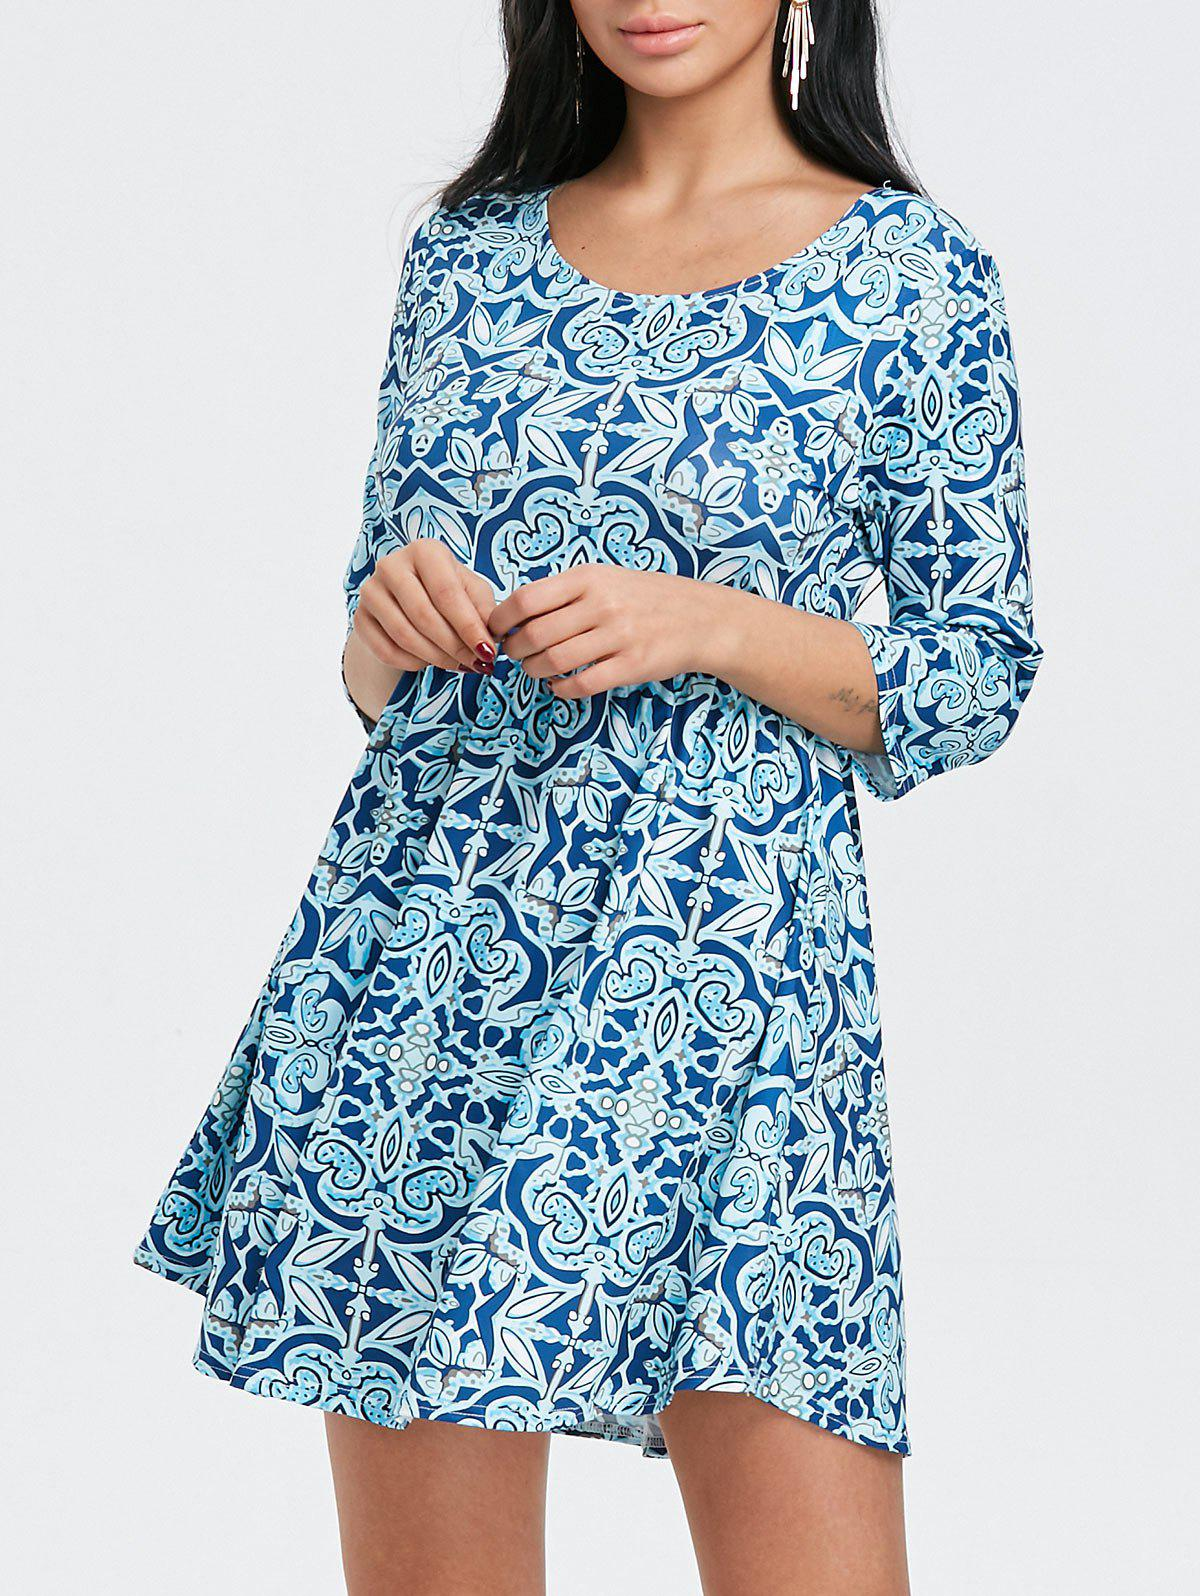 Hot Floral Printed Scoop Neck Mini Dress